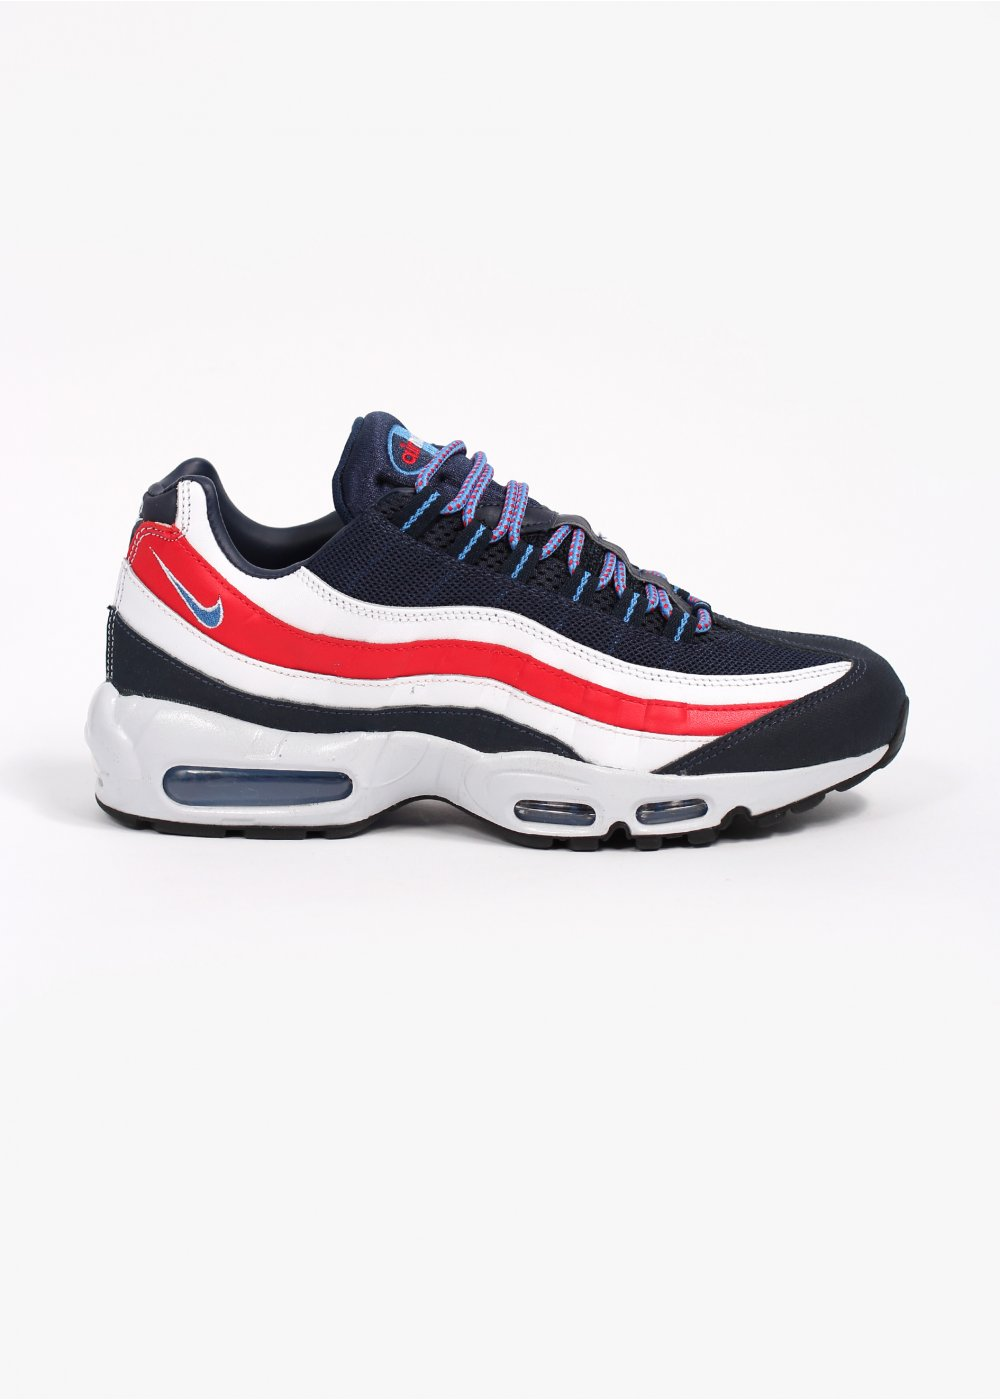 Nike Air Max 95 London QS